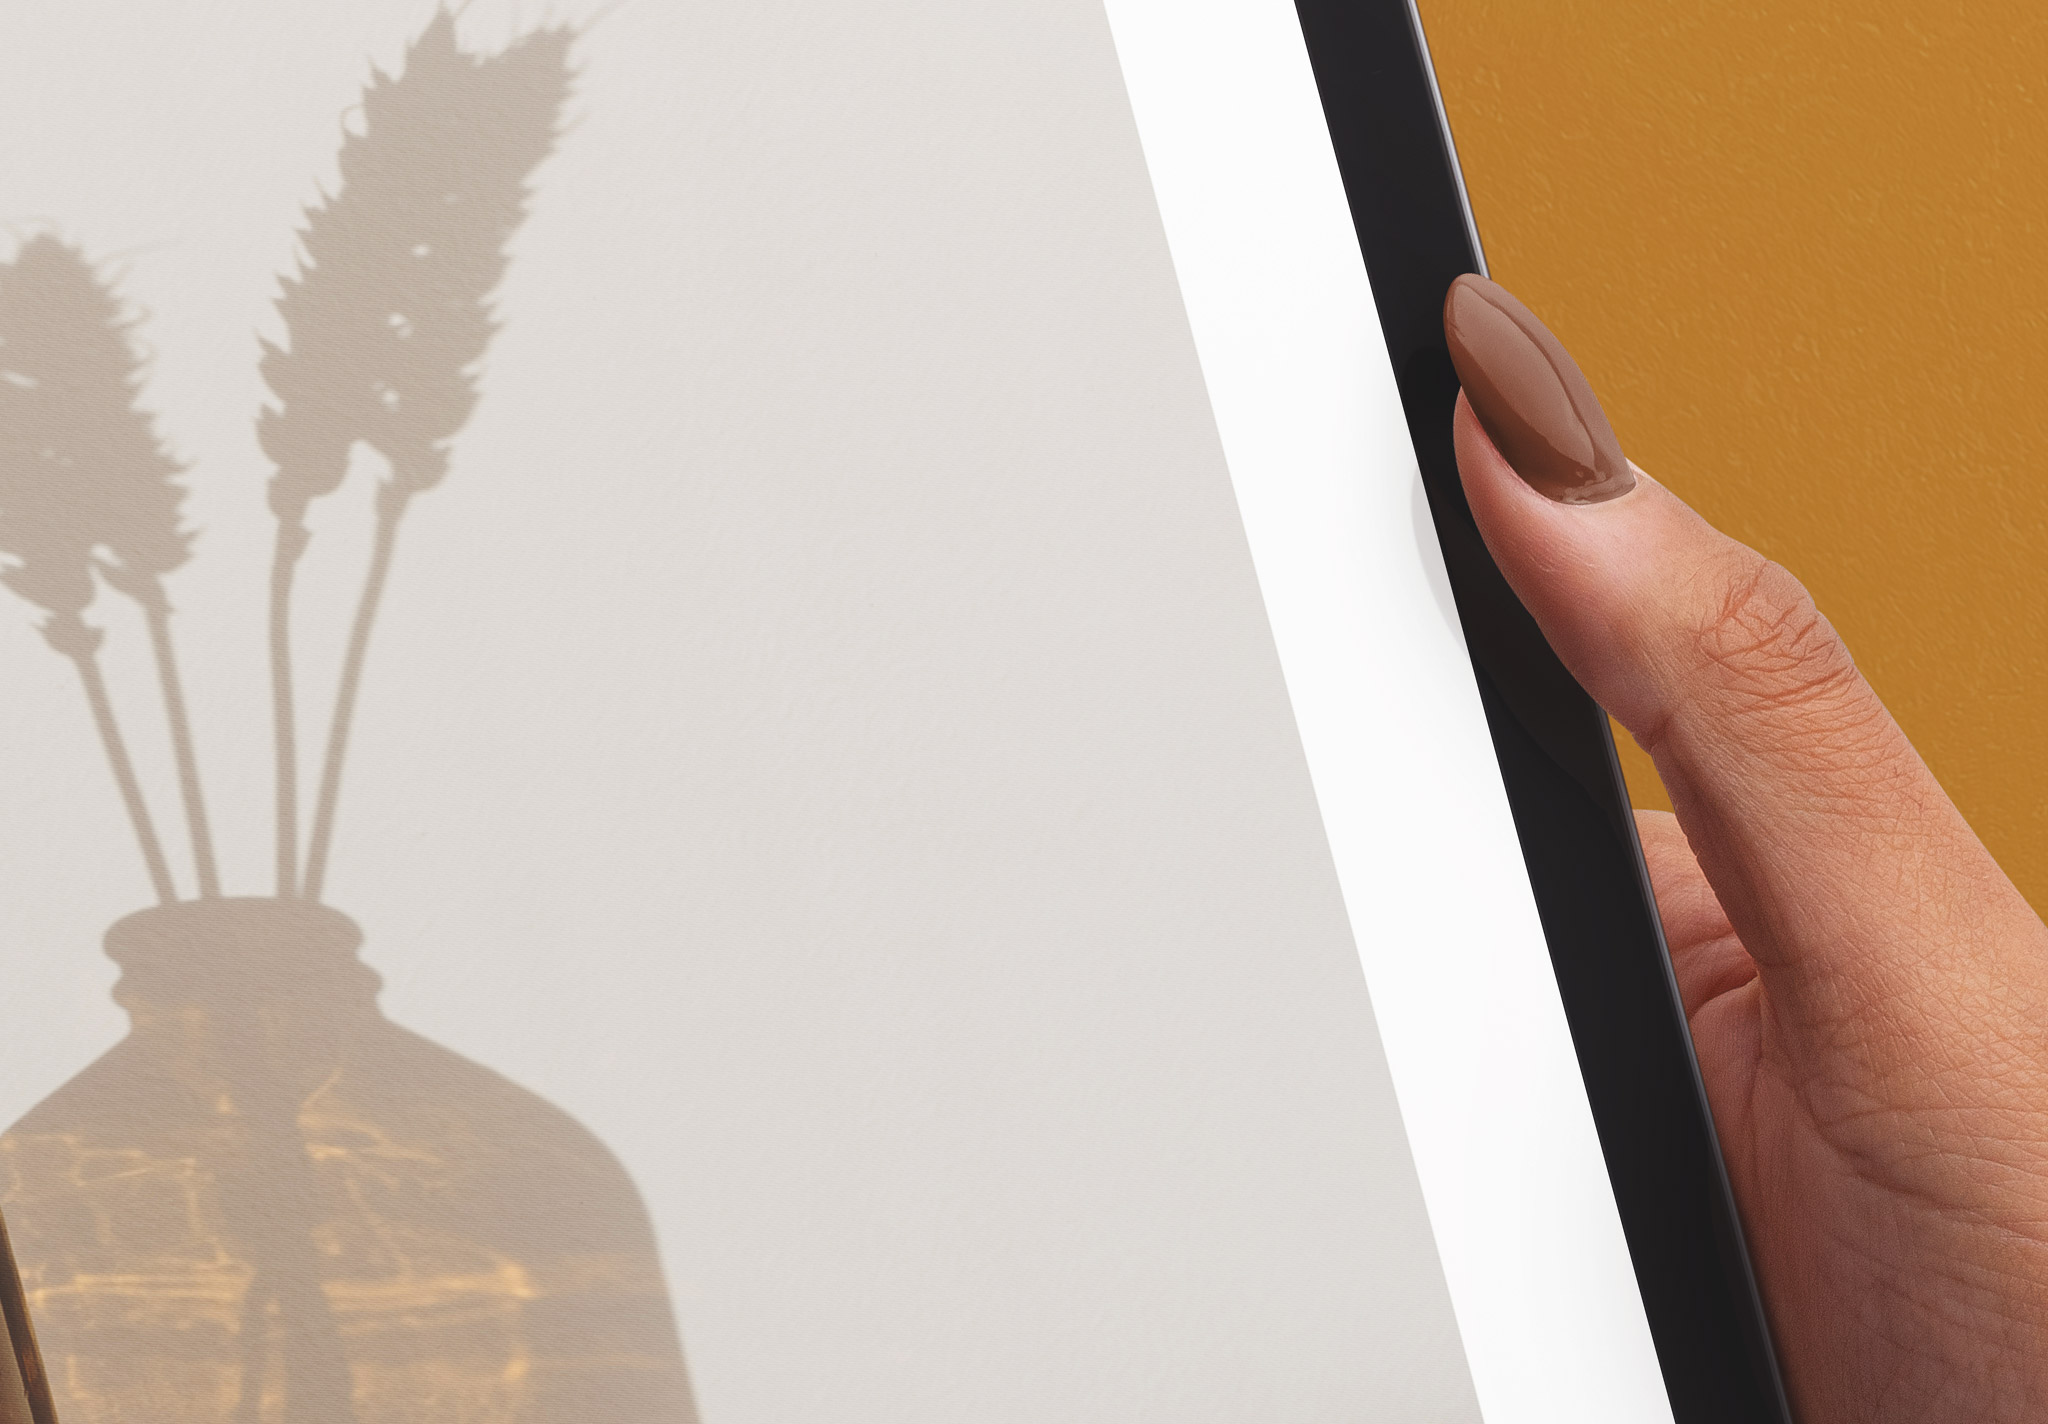 Hands Holding Tablet Pro Vertical Mockup Image04